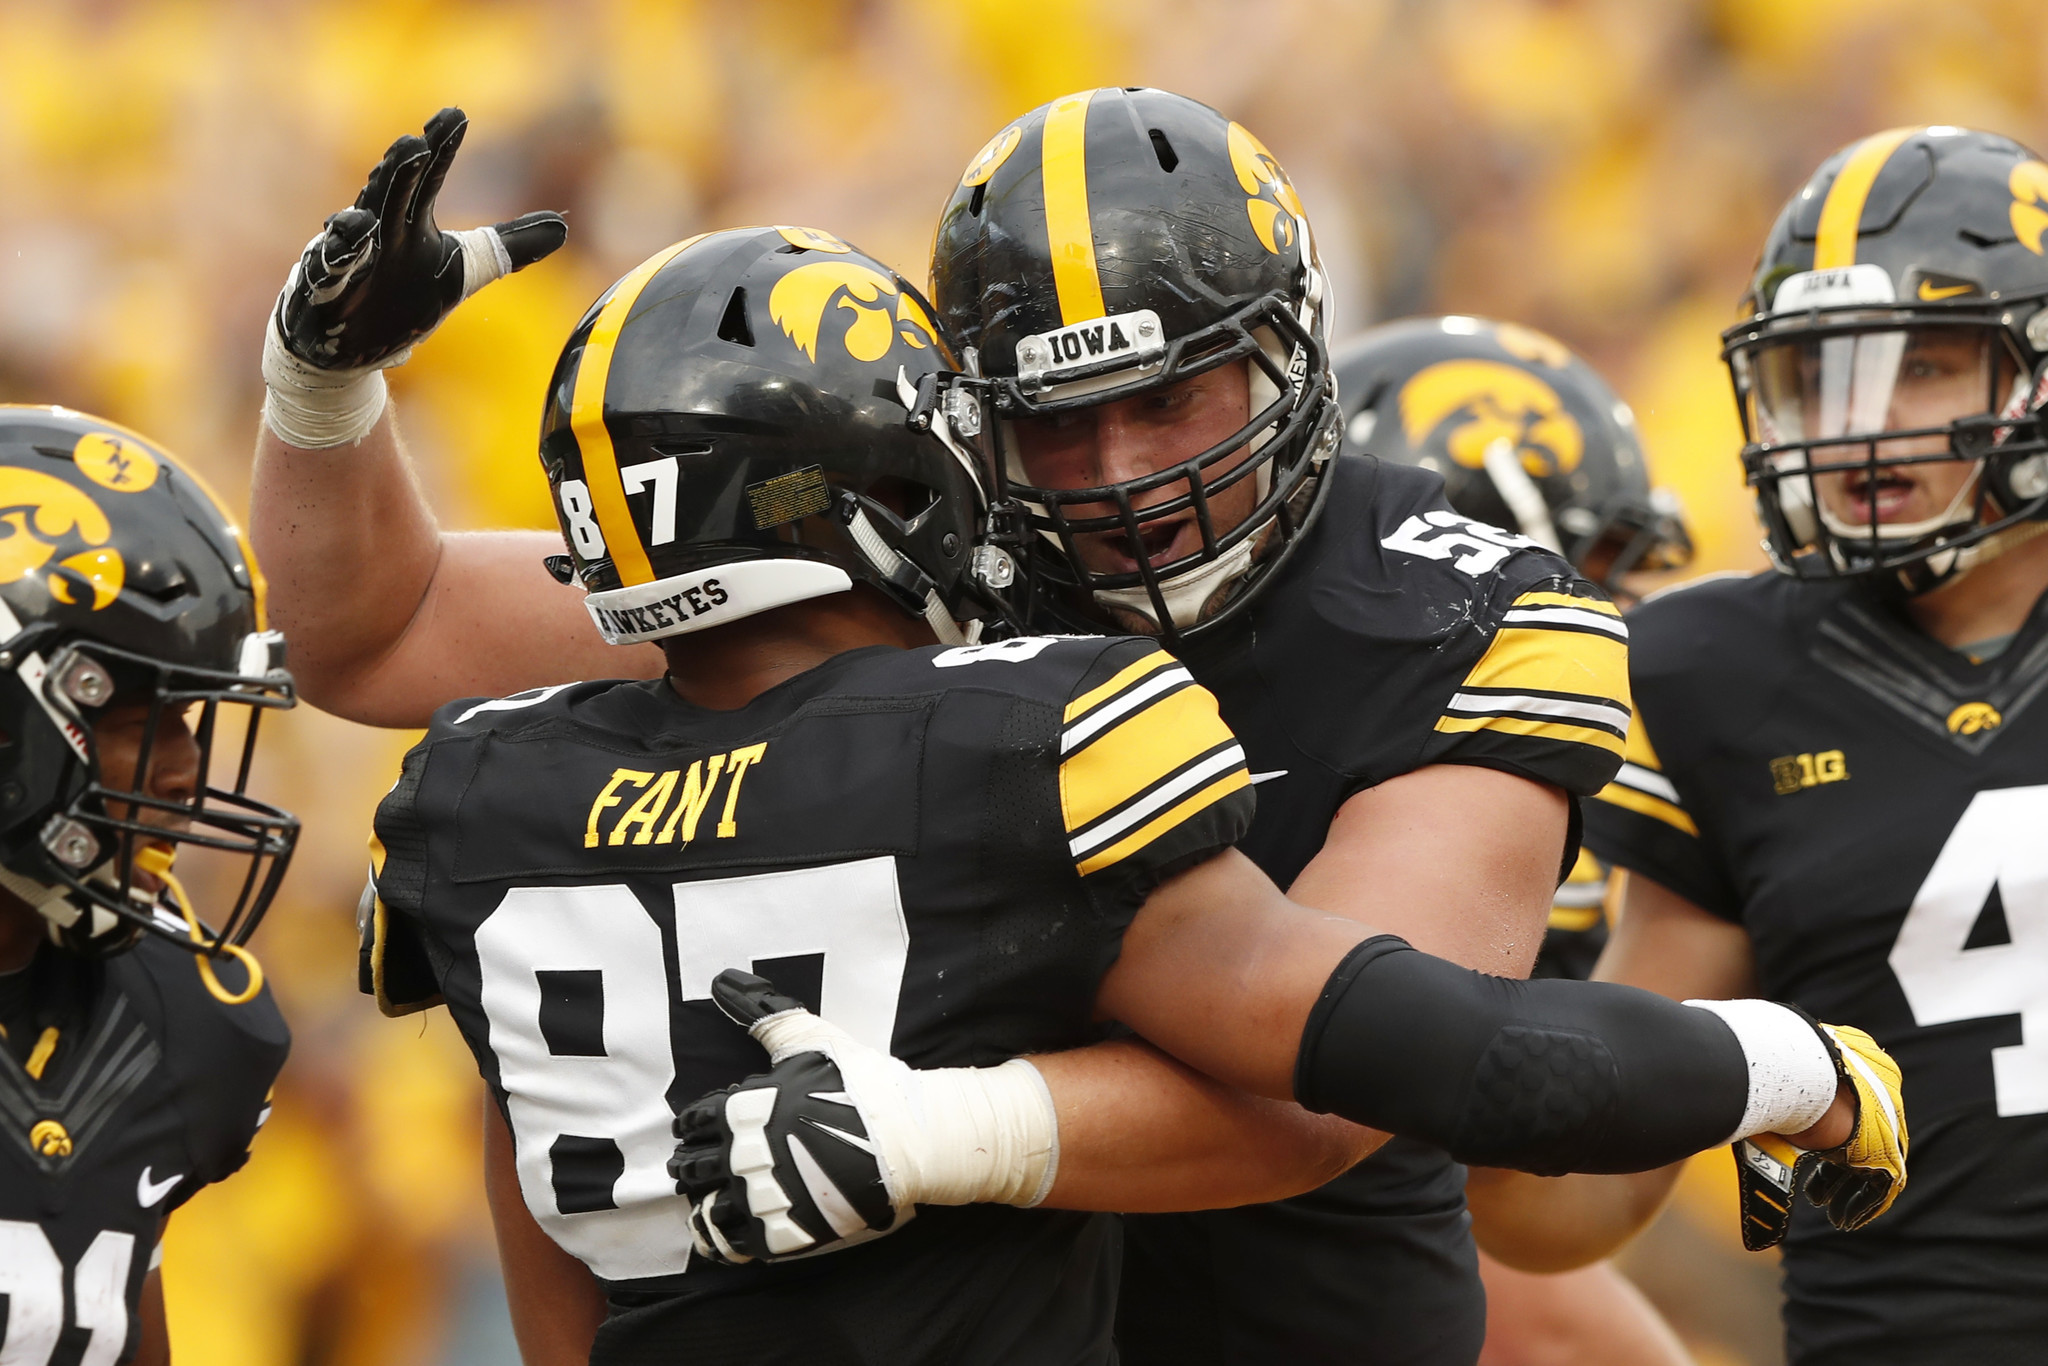 Ct-penn-state-iowa-preview-spt-0923-20170922